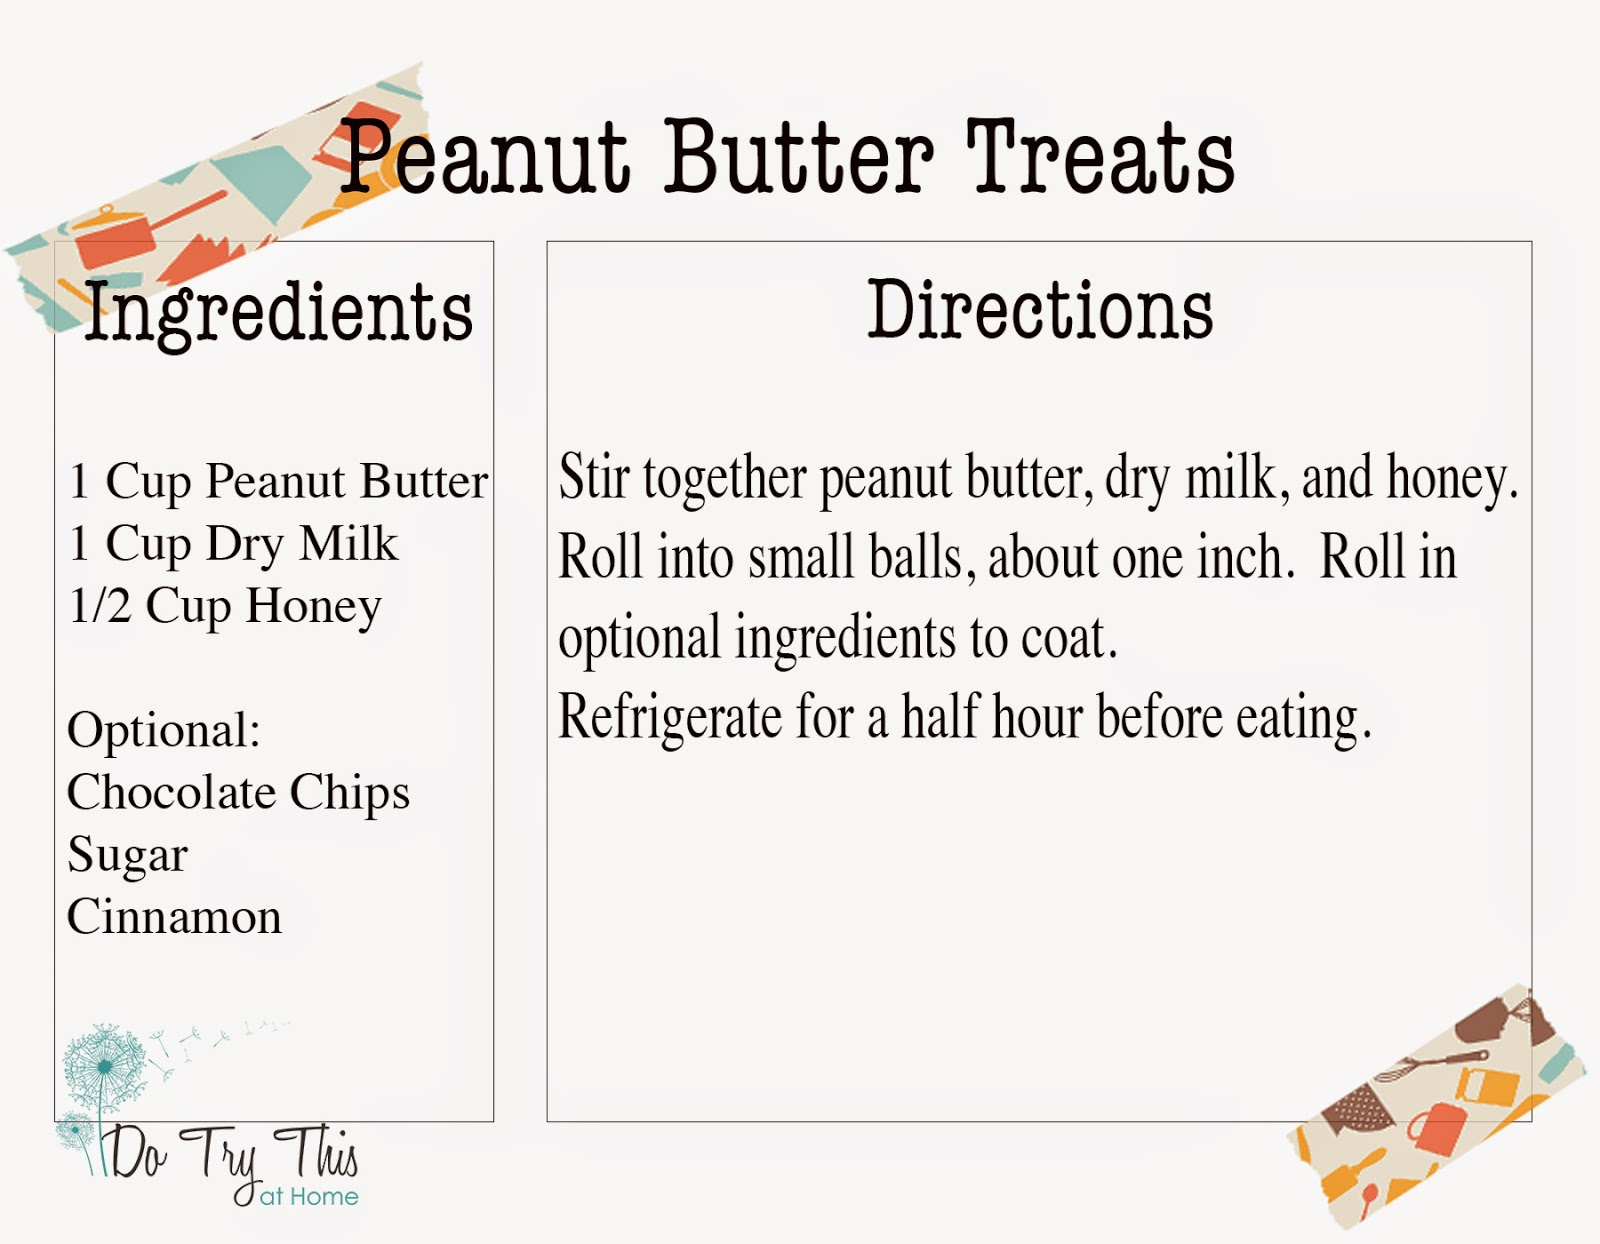 Do Try This at Home: Recipe for Peanut Butter Treats